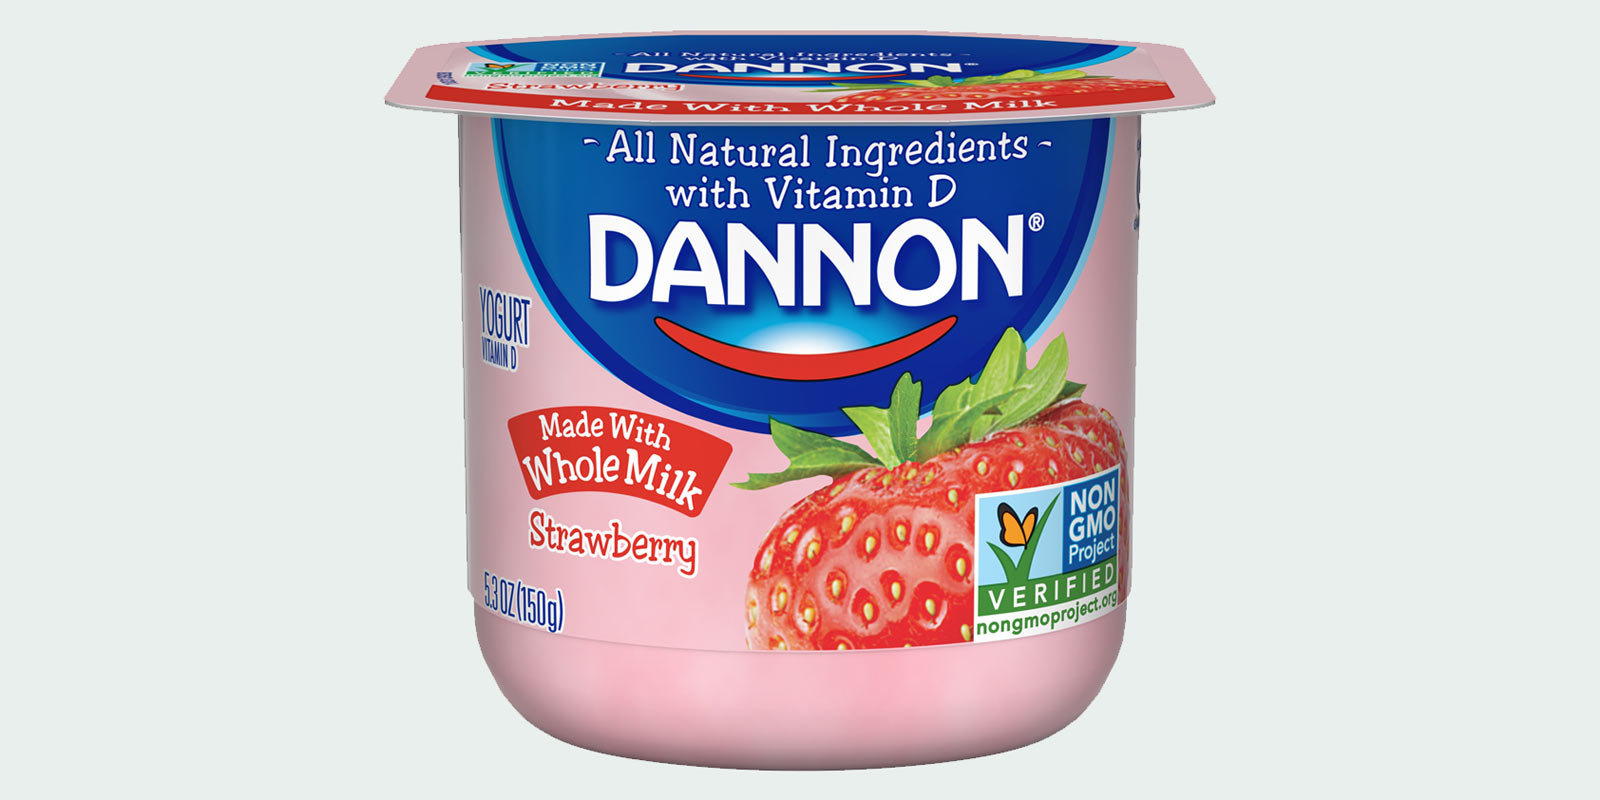 Non-gmo verified Dannon yogurt